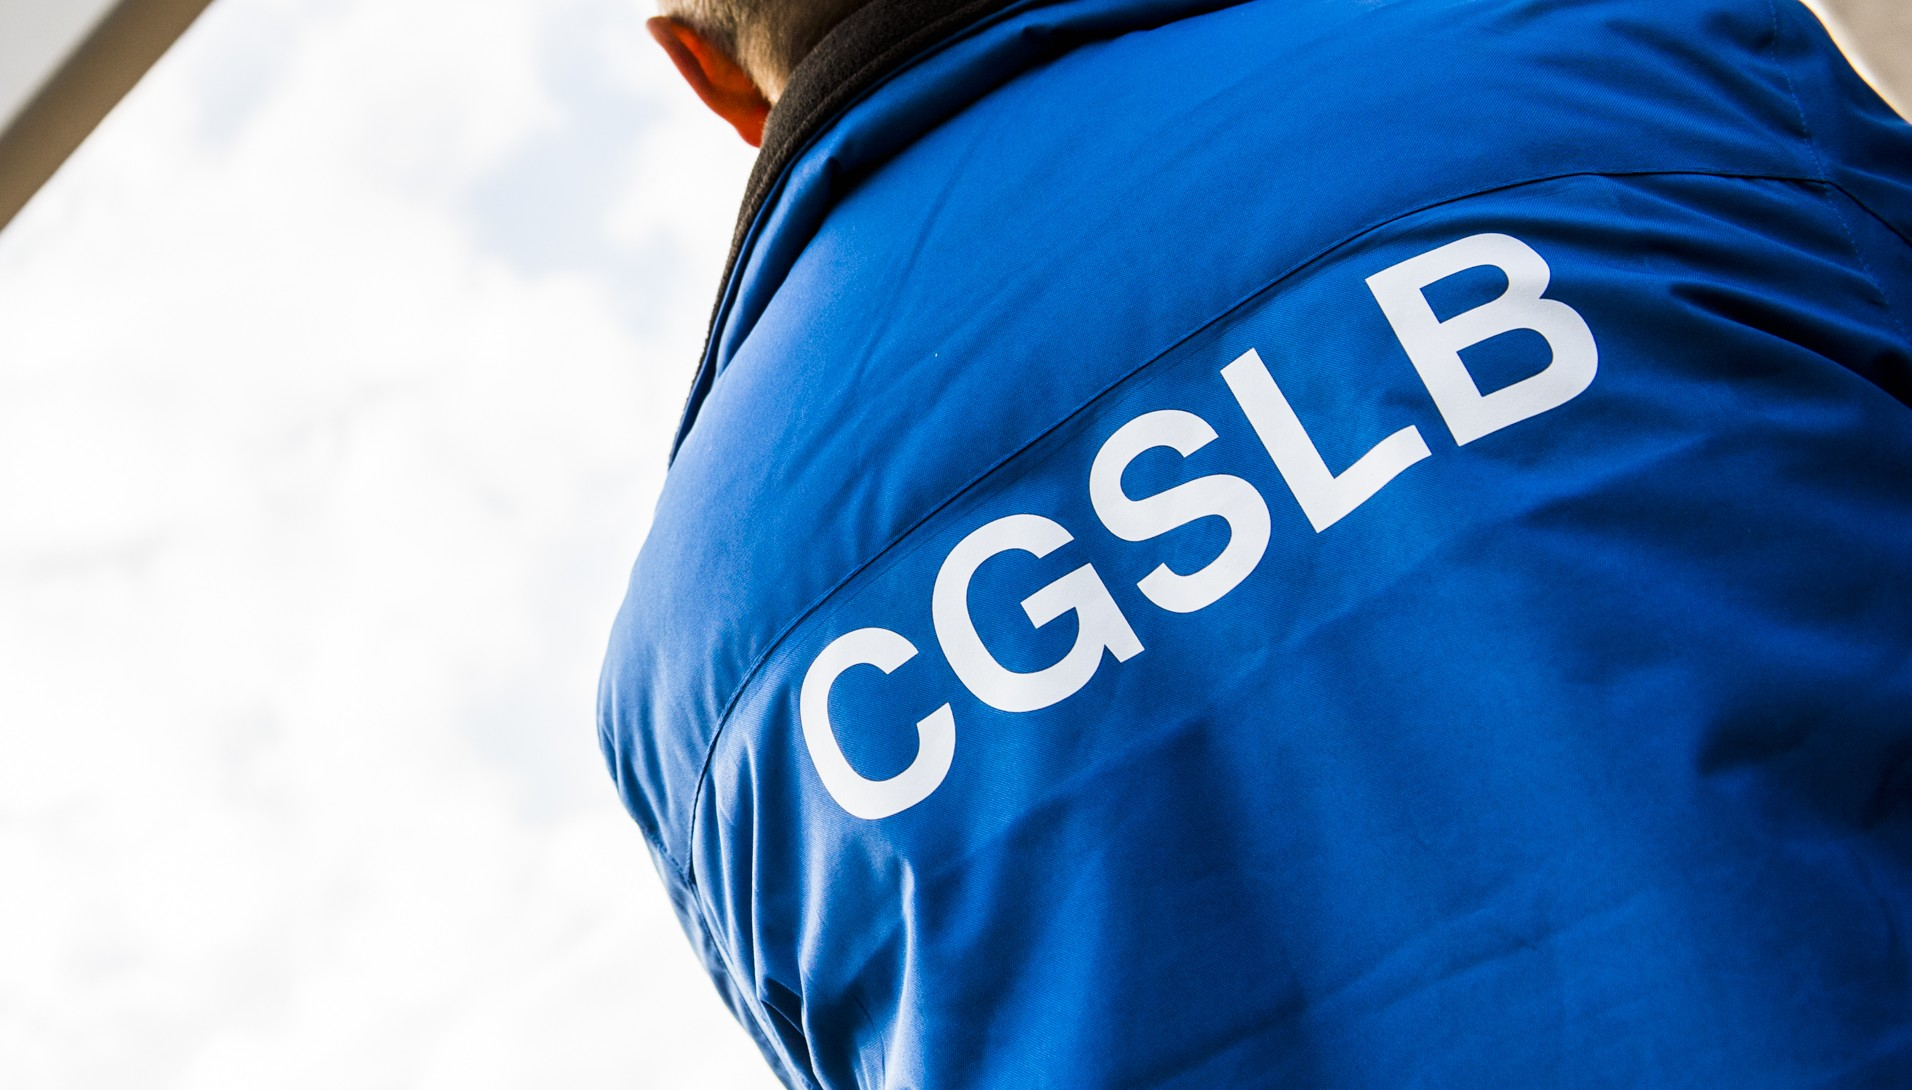 20150624 - BRUSSELS, BELGIUM: A man wearing CGSLB liberal union vest pictured ahead of an extraordinary works council (Conseil d'entreprise - ondernemingsraad) of Delhaize group, Wednesday 24 June 2015 in Brussels. They will discuss the future of the group with the possible consolidation with Dutch group Ahold and their supermarket Albert Heijn. BELGA PHOTO LAURIE DIEFFEMBACQ